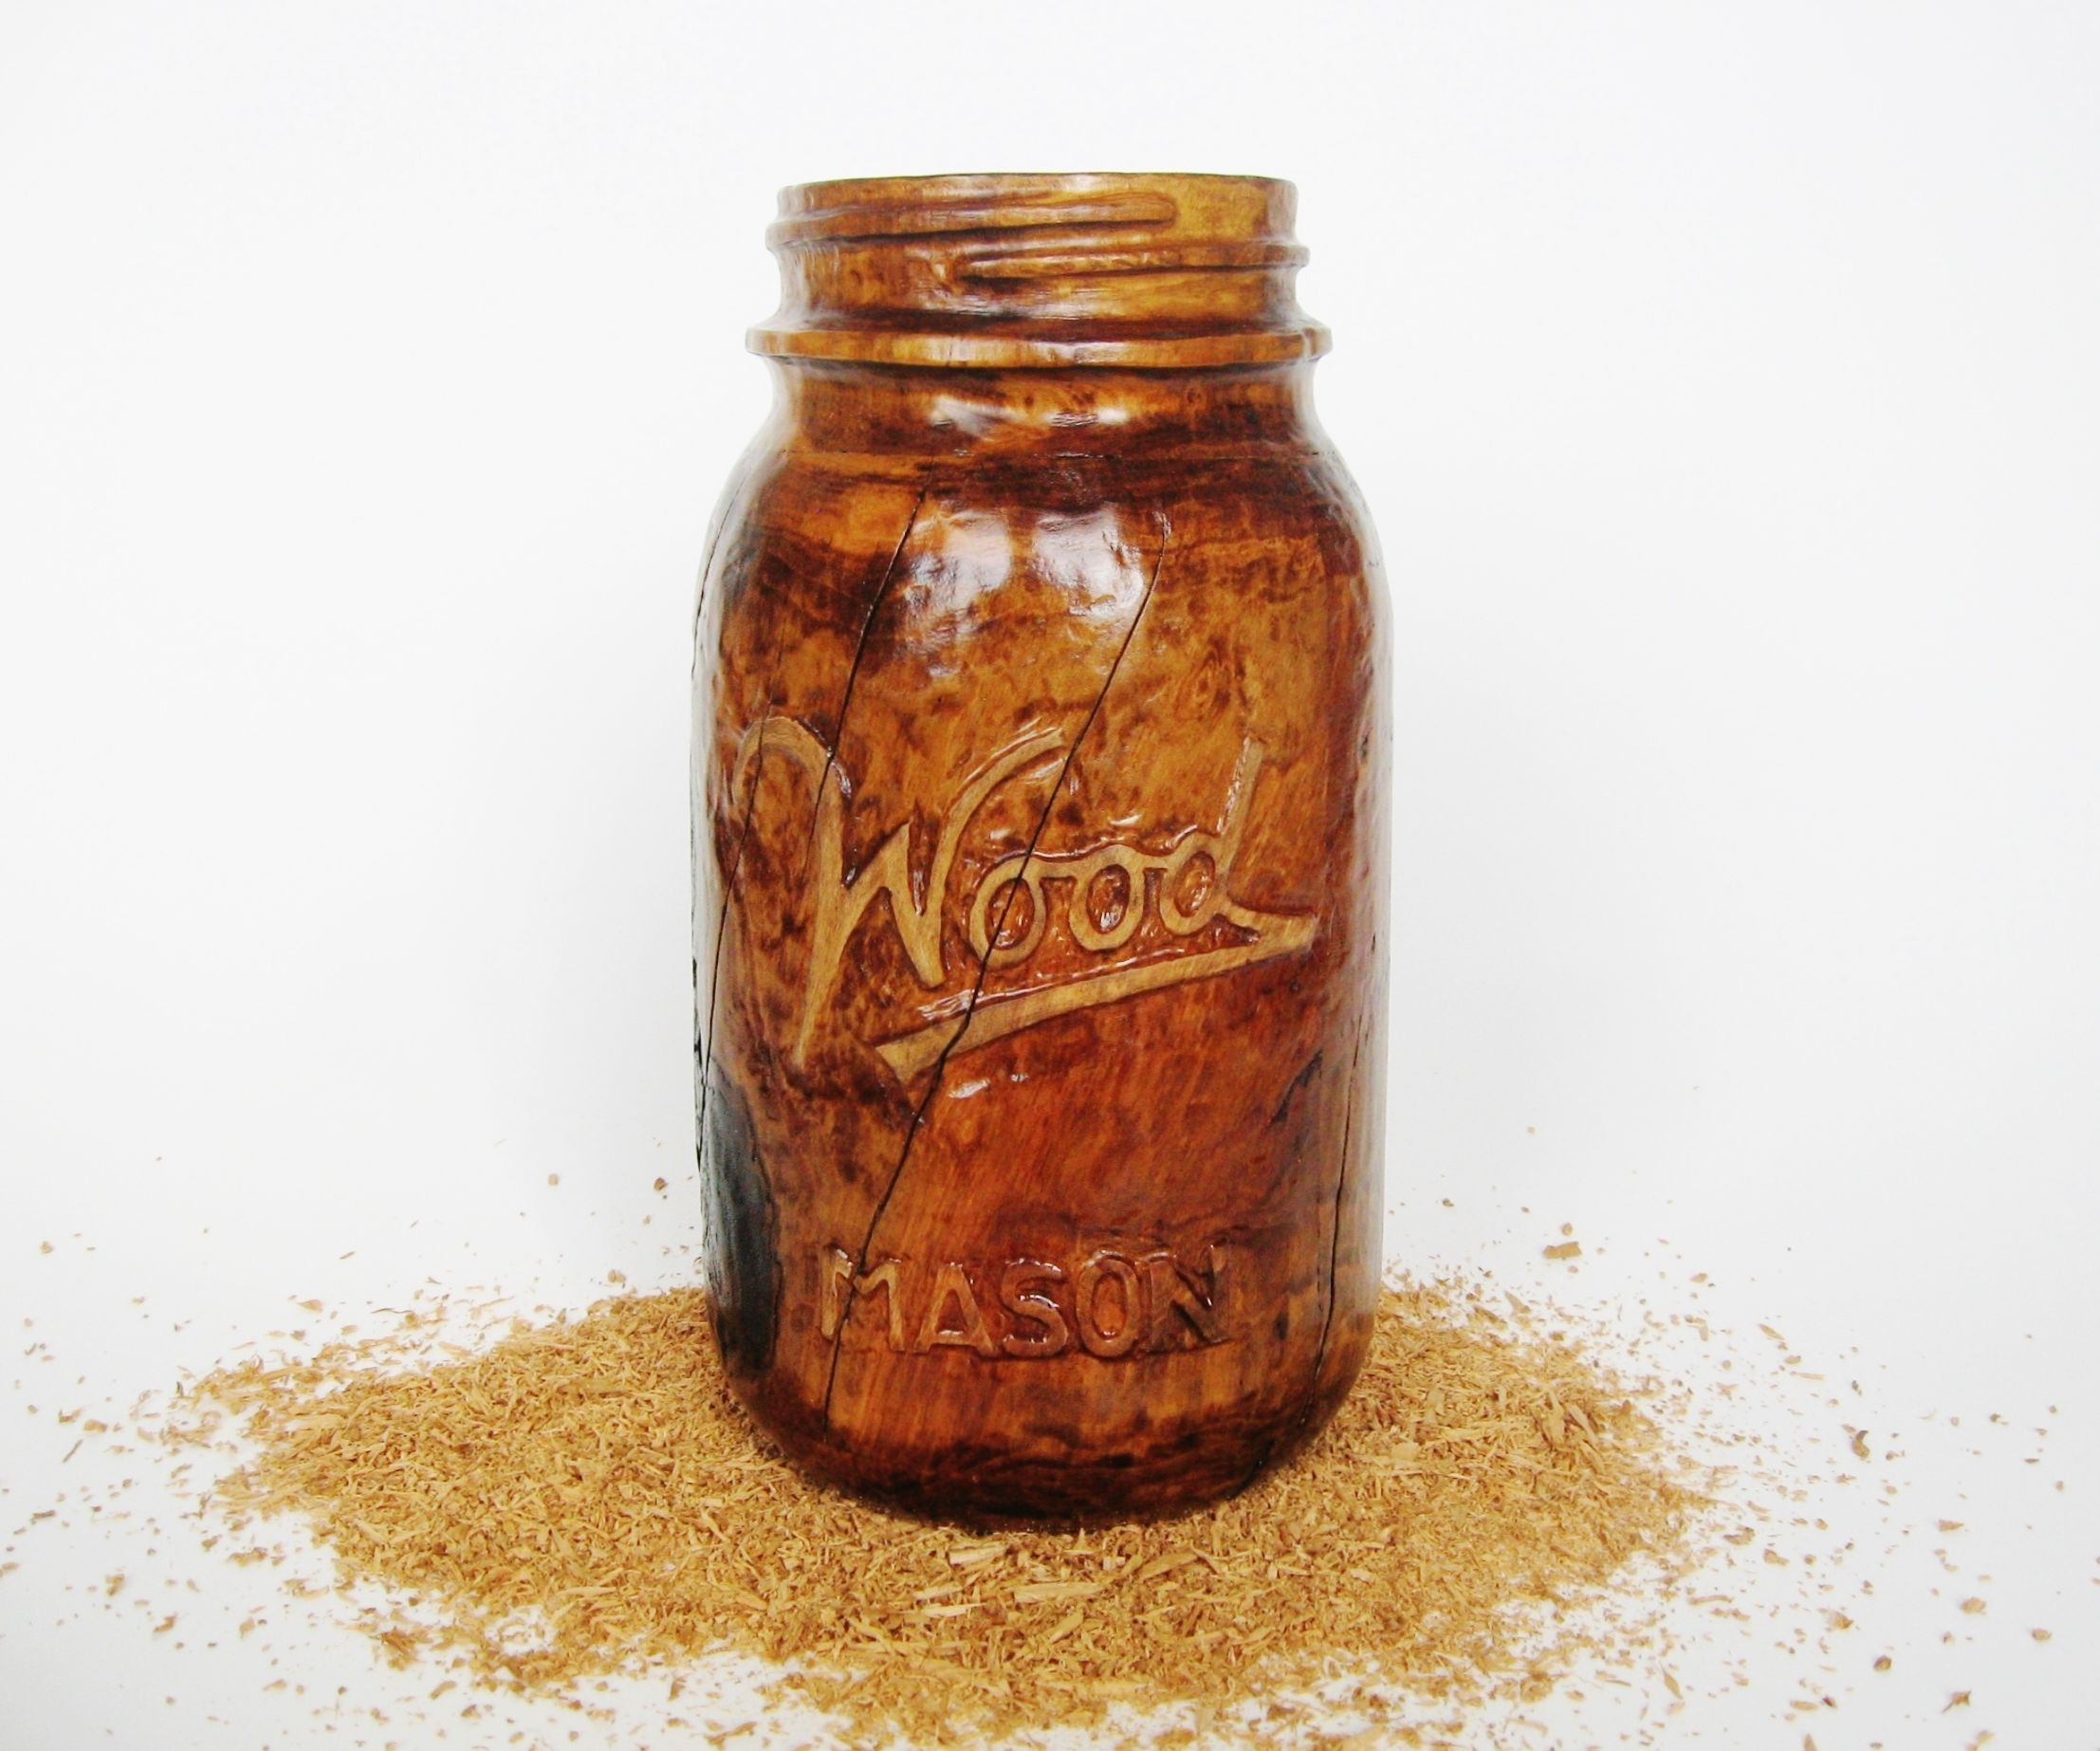 Wooden Mason Jar (carved from a cherry log)